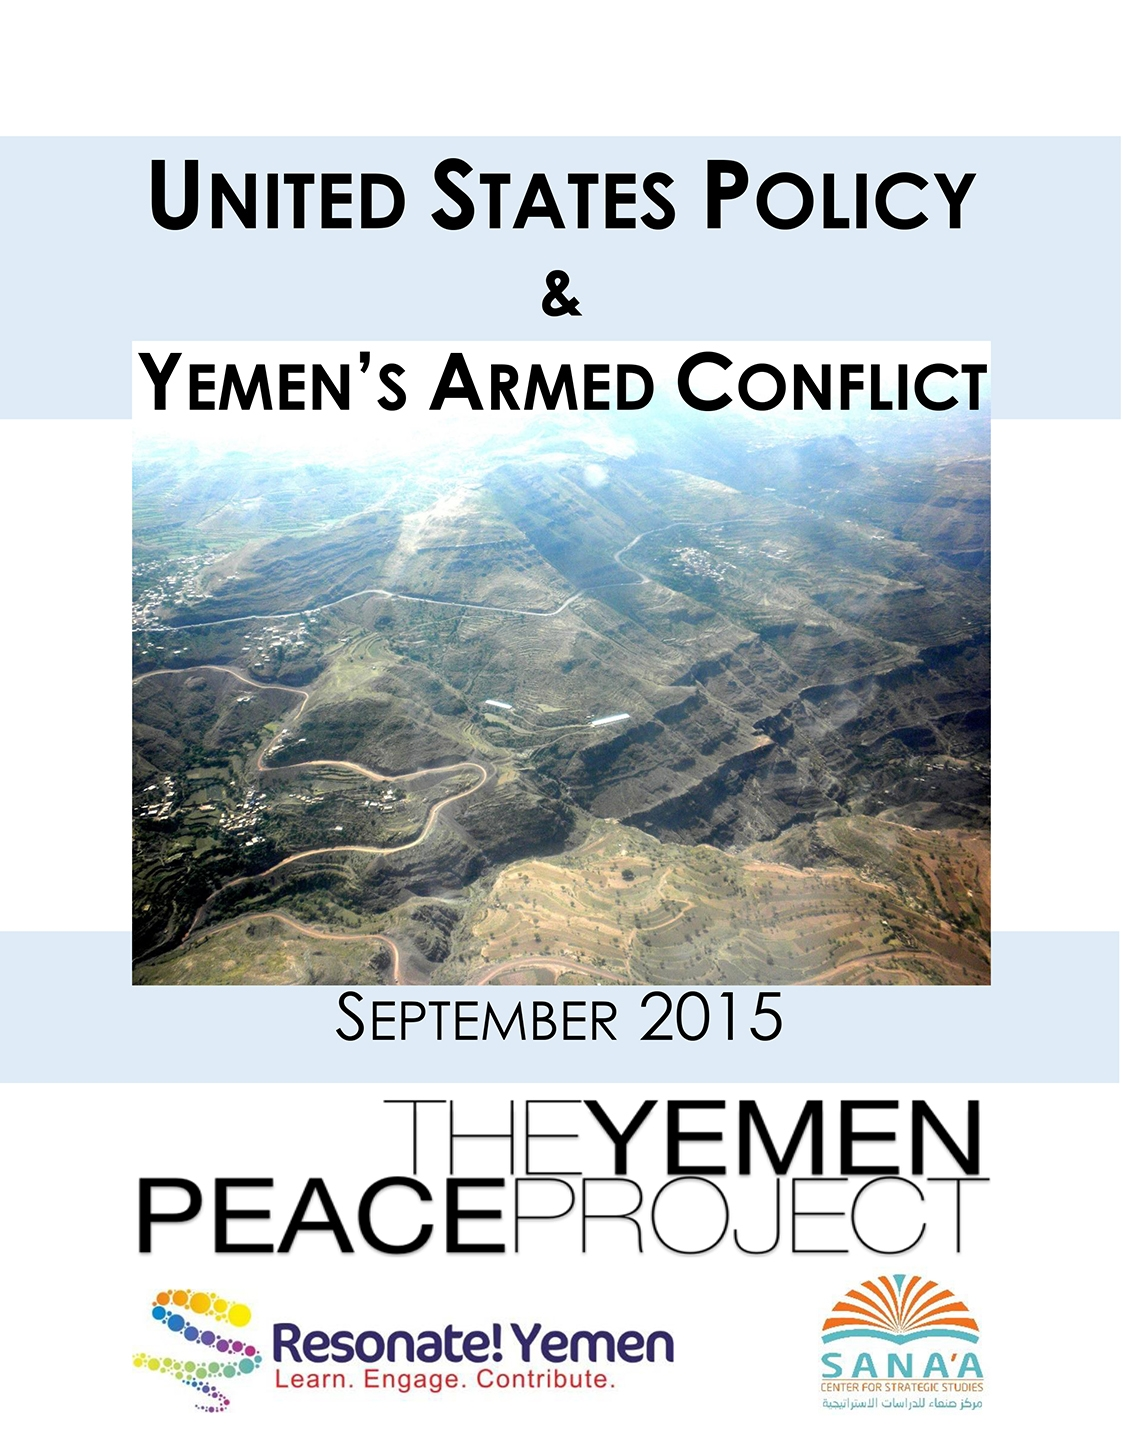 United States Policy & Yemen's Armed Conflict